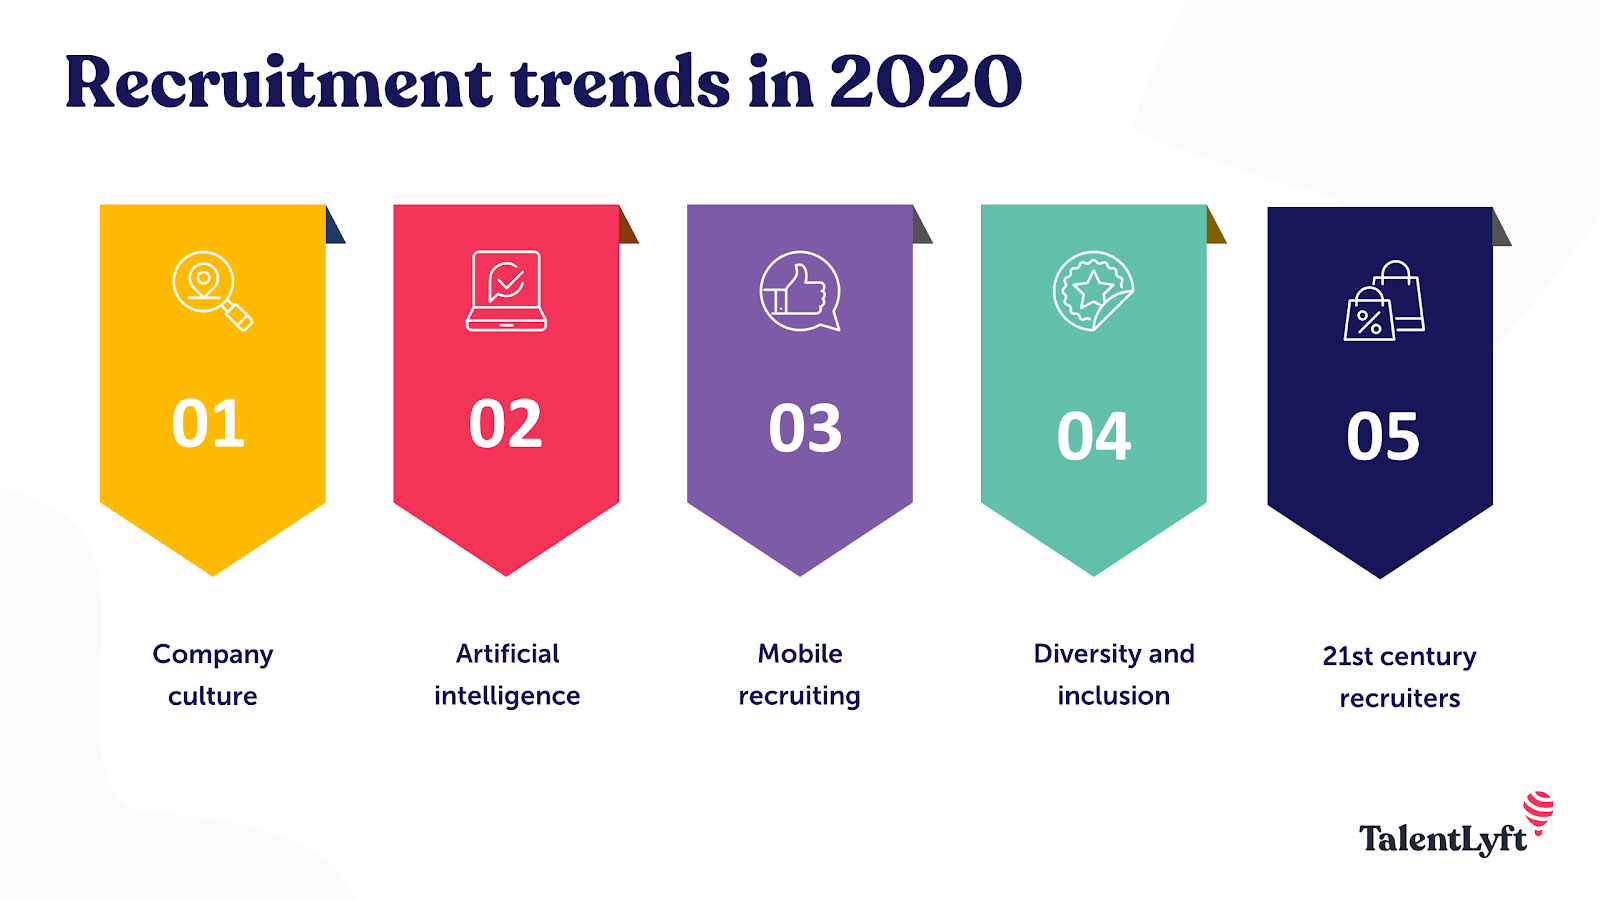 Recruitment trends 2020